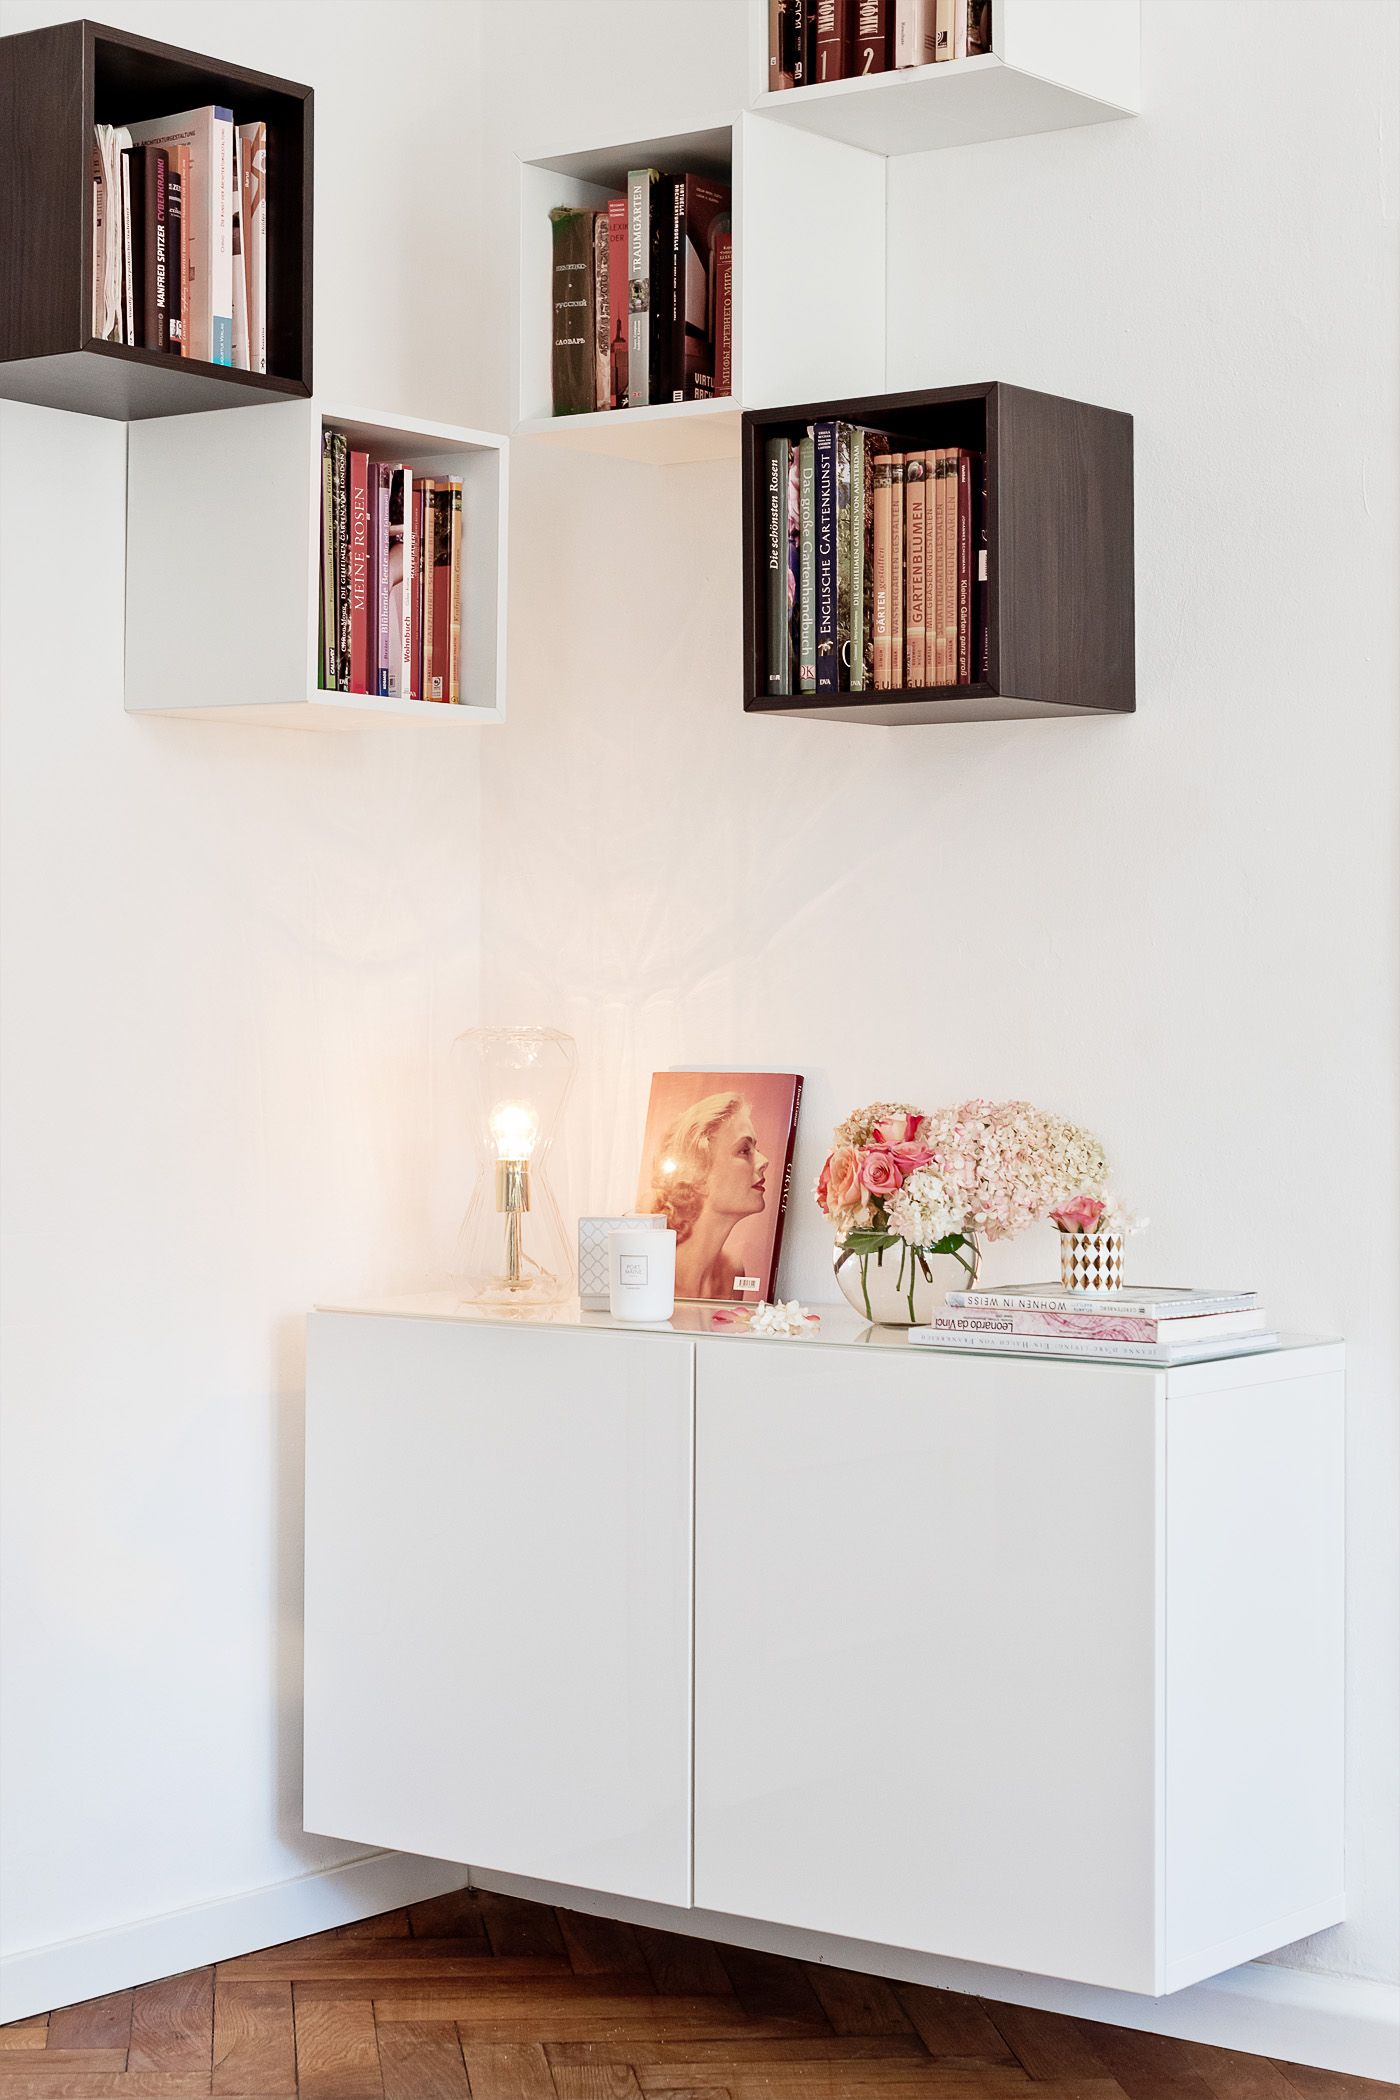 Ikea Valje Wandregal Flat Ideas Pinterest Wohnzimmer Mobel